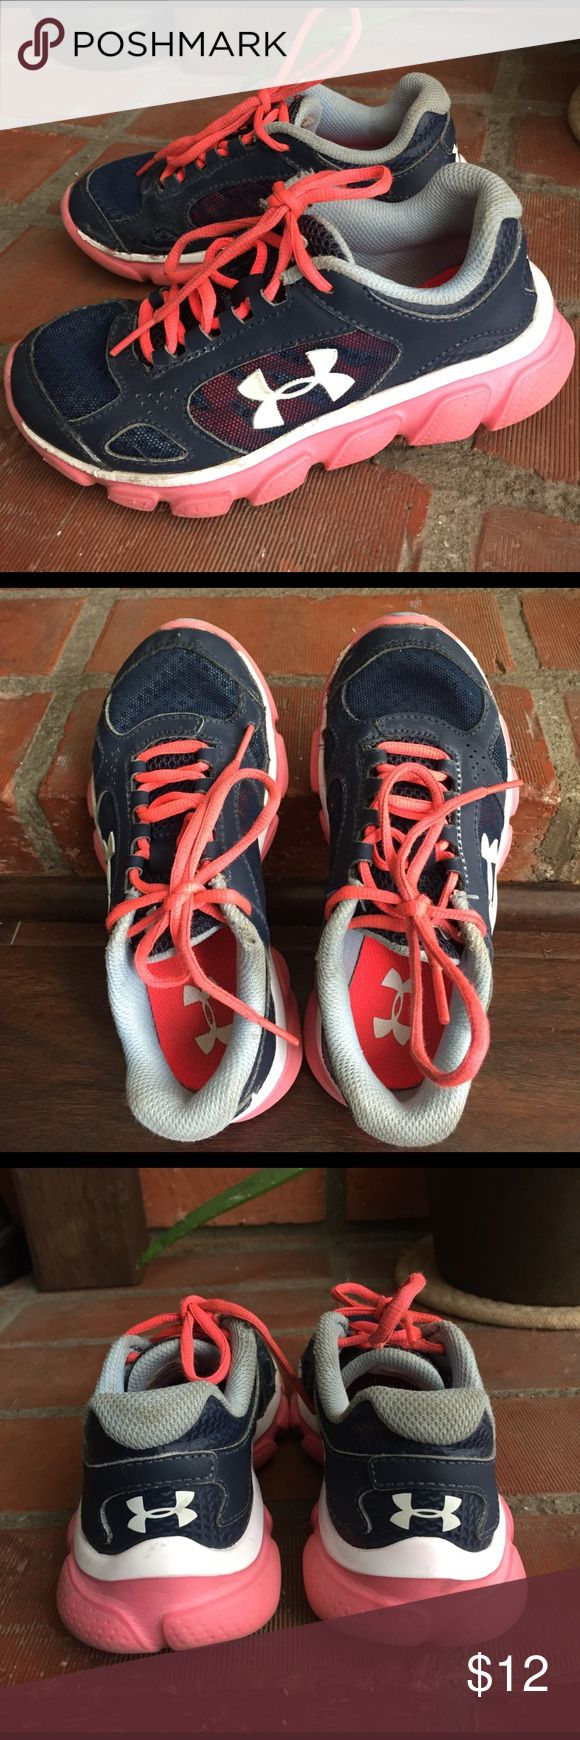 Under Armour kids running shoes size 13 kids Under Armour Shoes Sneakers